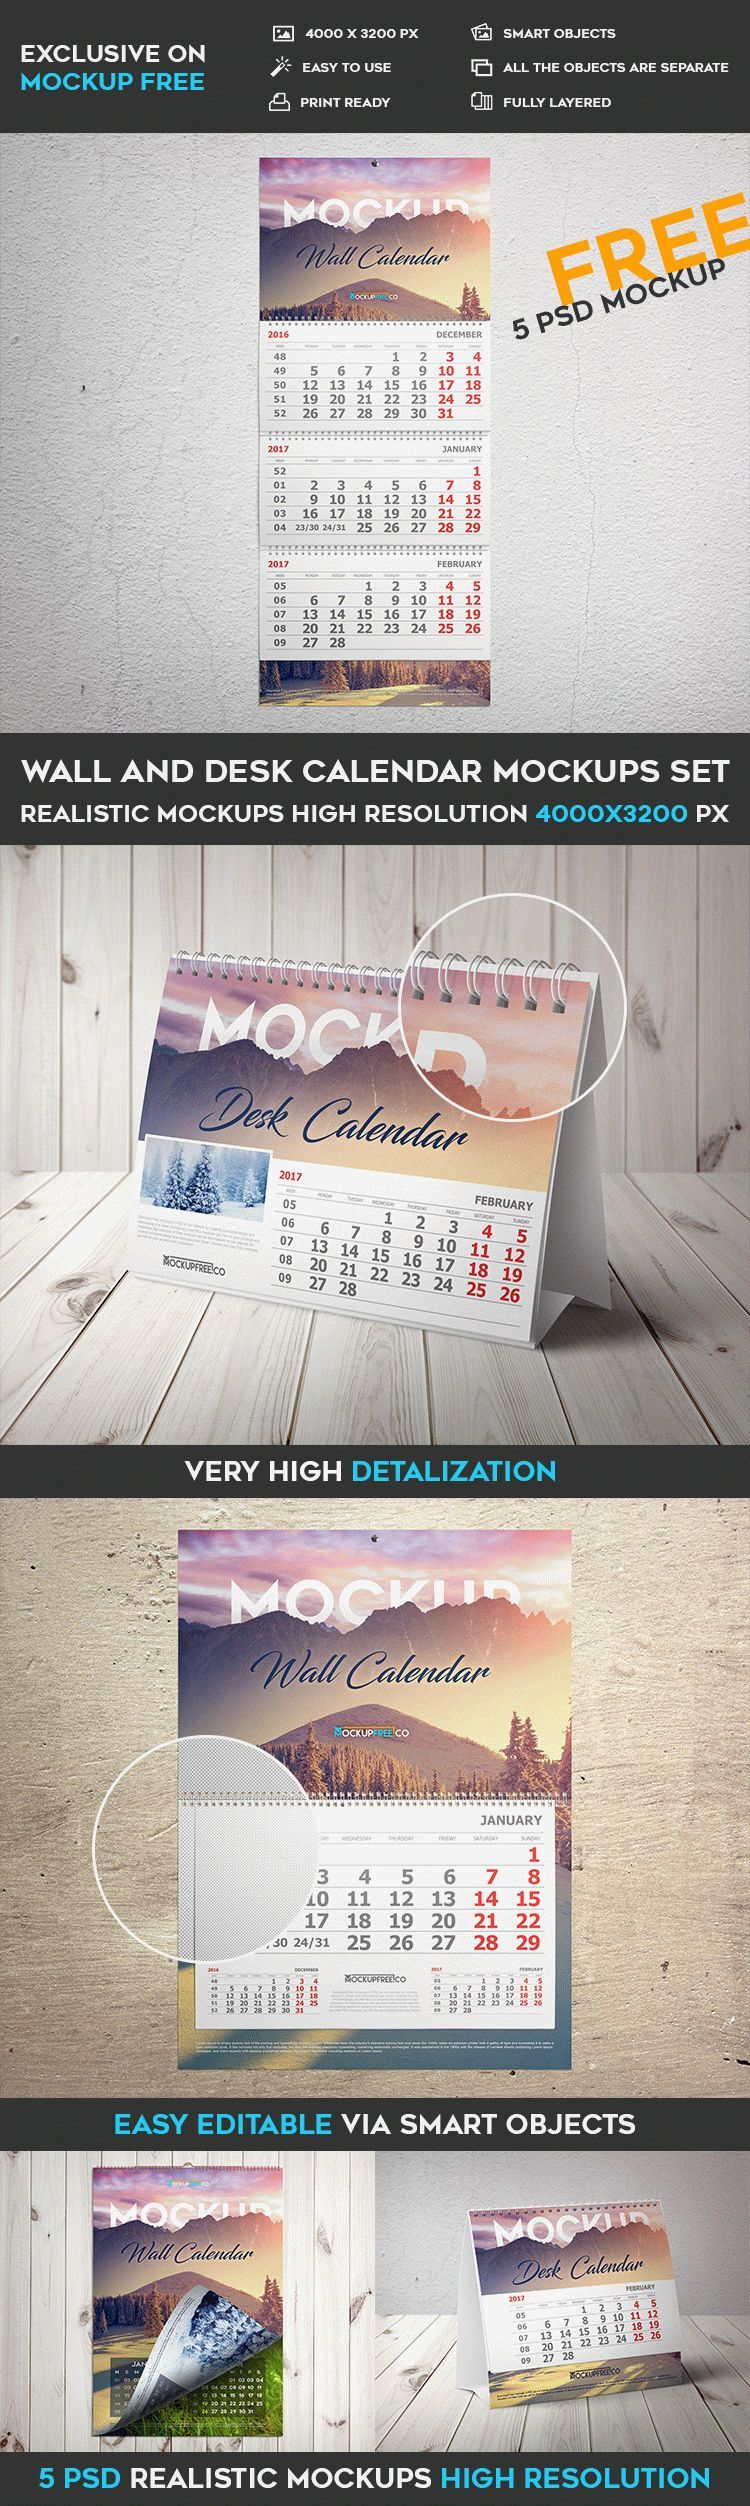 Wall And Desk Calendar Mockups Set 5 Free Psd Mockups Free Psd